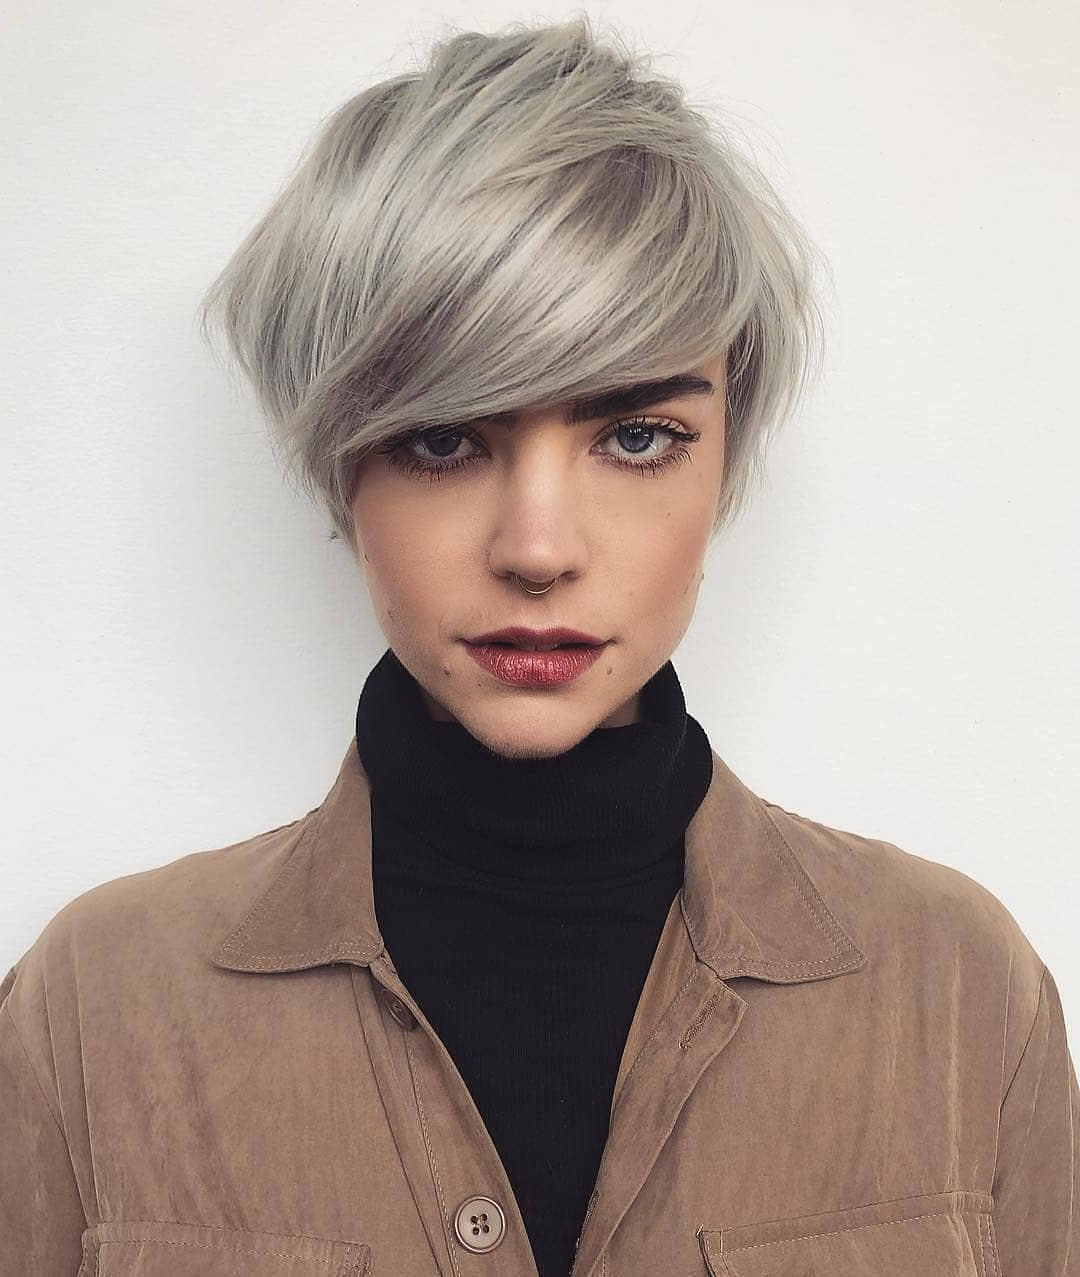 10 Trendy Short Hairstyles For Straight Hair – Pixie Haircut Regarding Trendy Silver Pixie Haircuts With Side Swept Bangs (View 2 of 20)